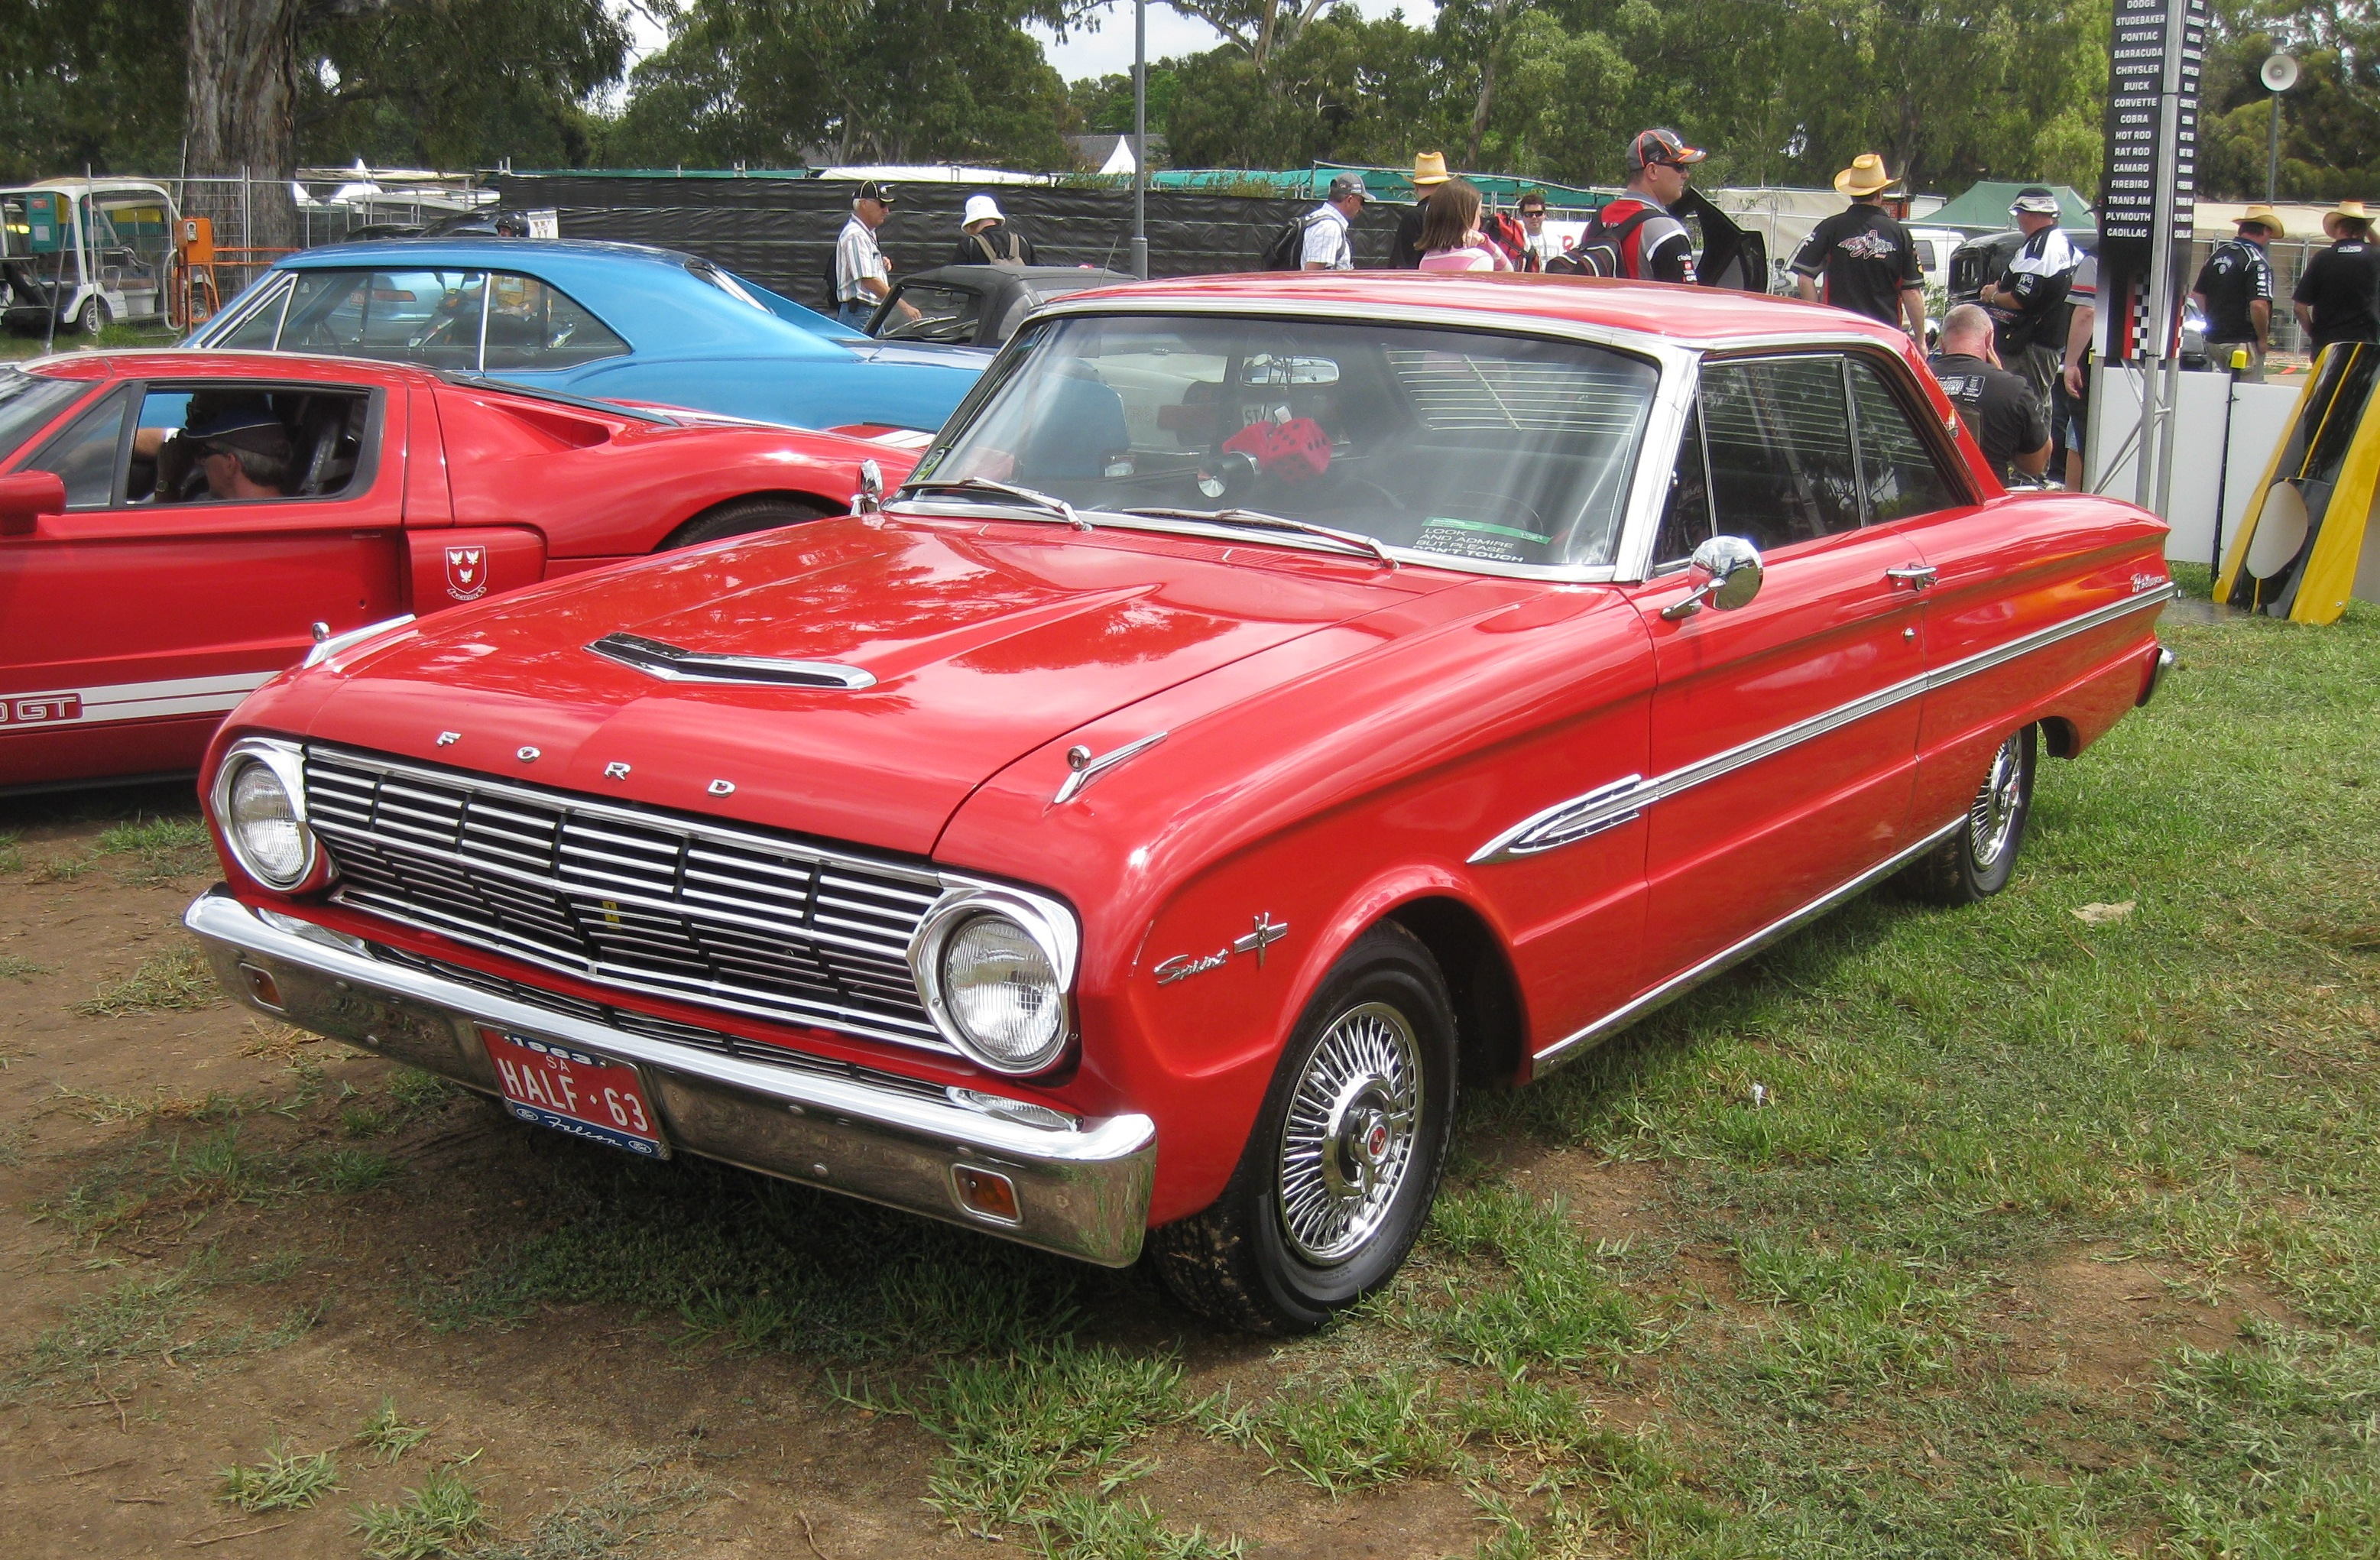 Ford Falcon  North America on 1963 ford falcon sprint parts for sale